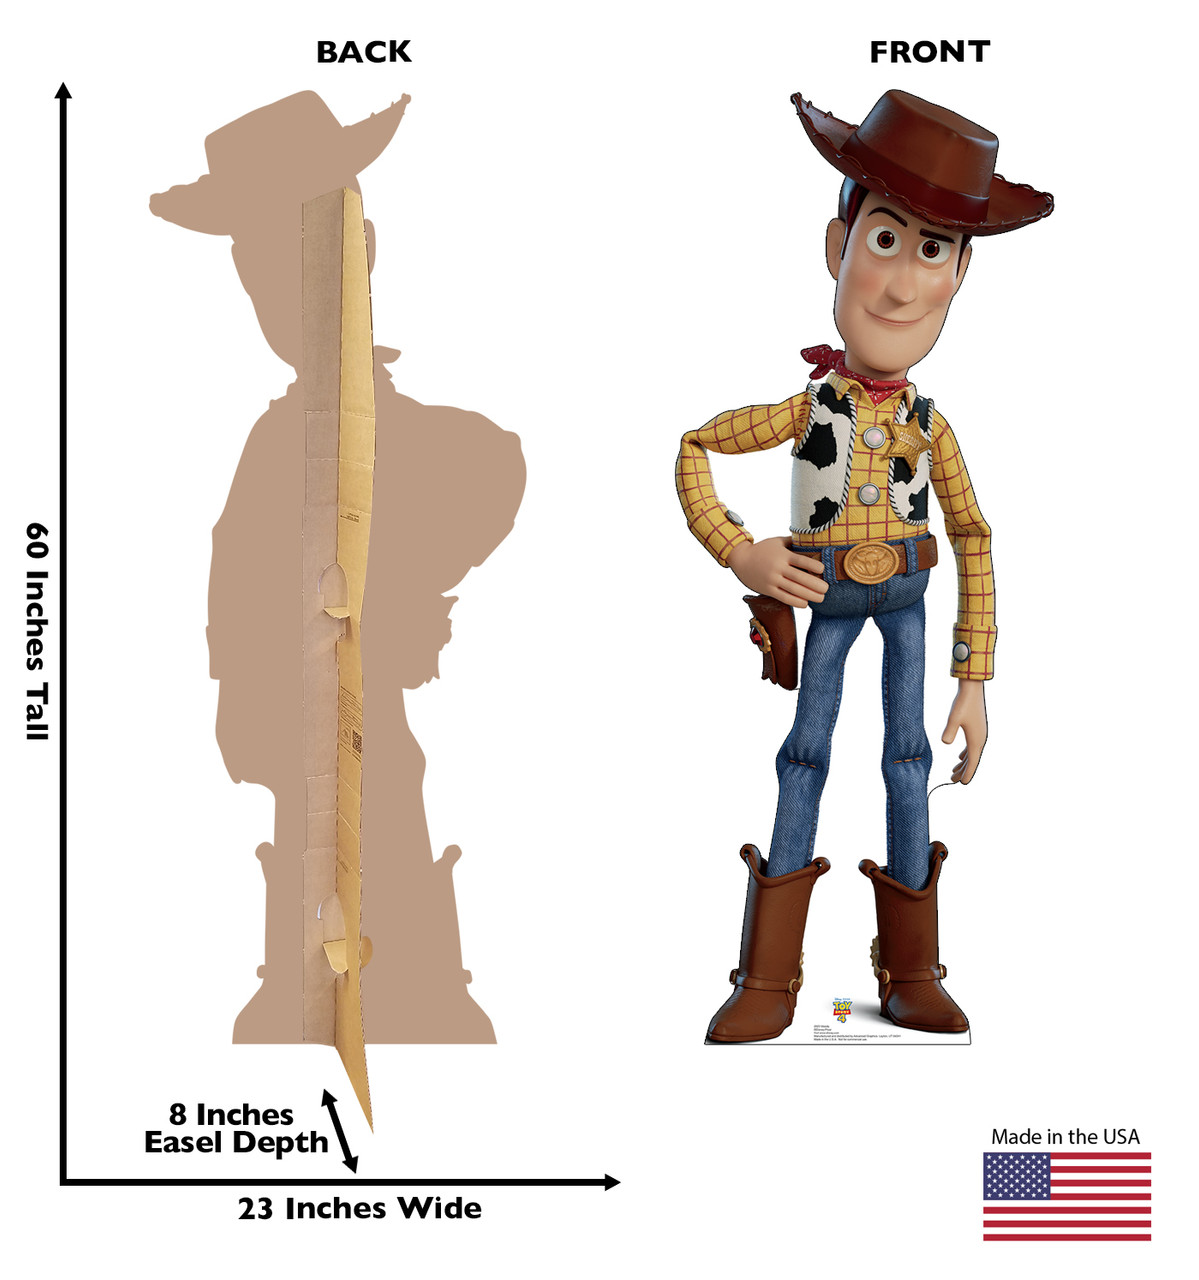 Woody - Toy Story 4 Cardboard Cutout Front and Back View